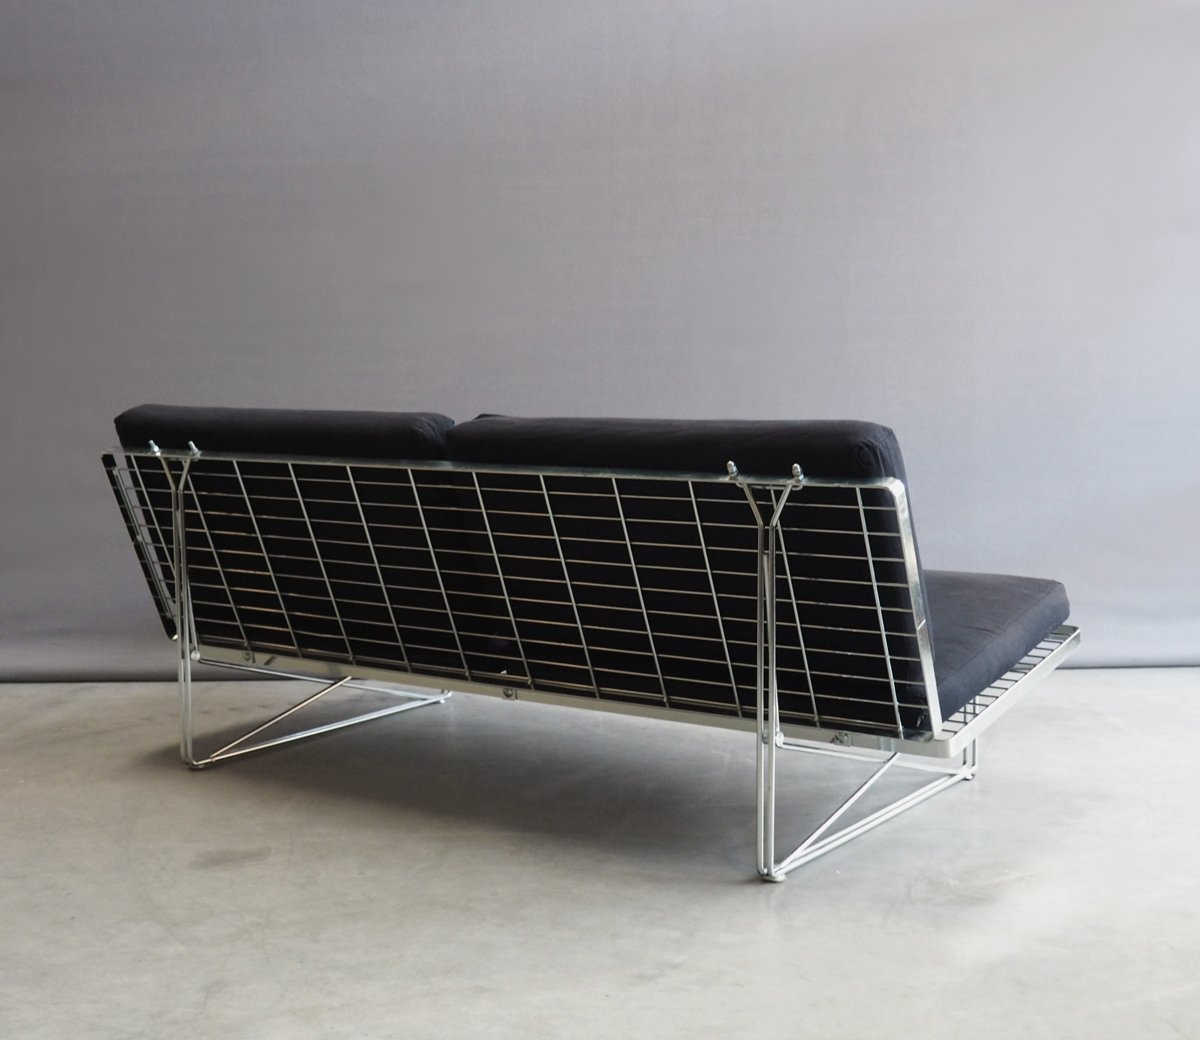 moment sofa by niels gammelgaard for ikea 1980s for sale at pamono. Black Bedroom Furniture Sets. Home Design Ideas